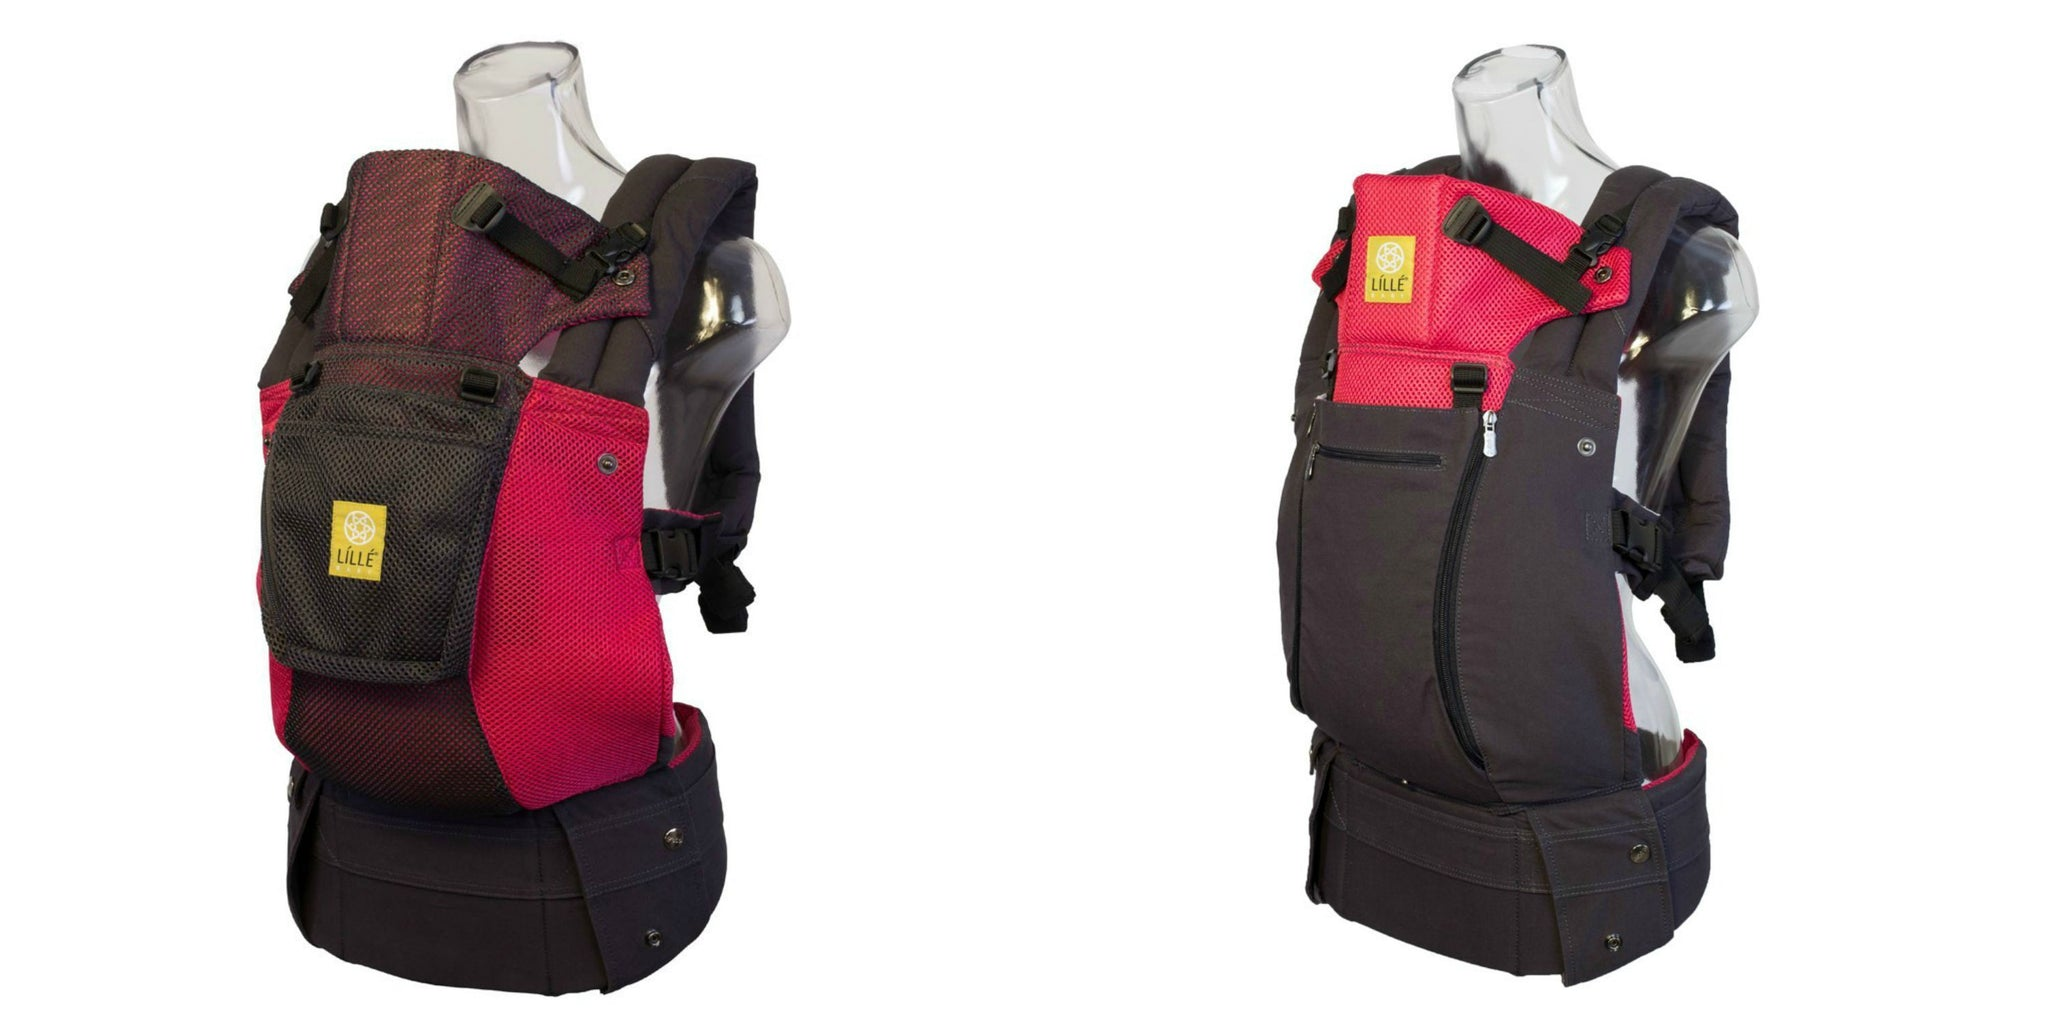 Which LÍLLÉbaby Carrier to Love: COMPLETE AirFlow vs. COMPLETE All Seasons